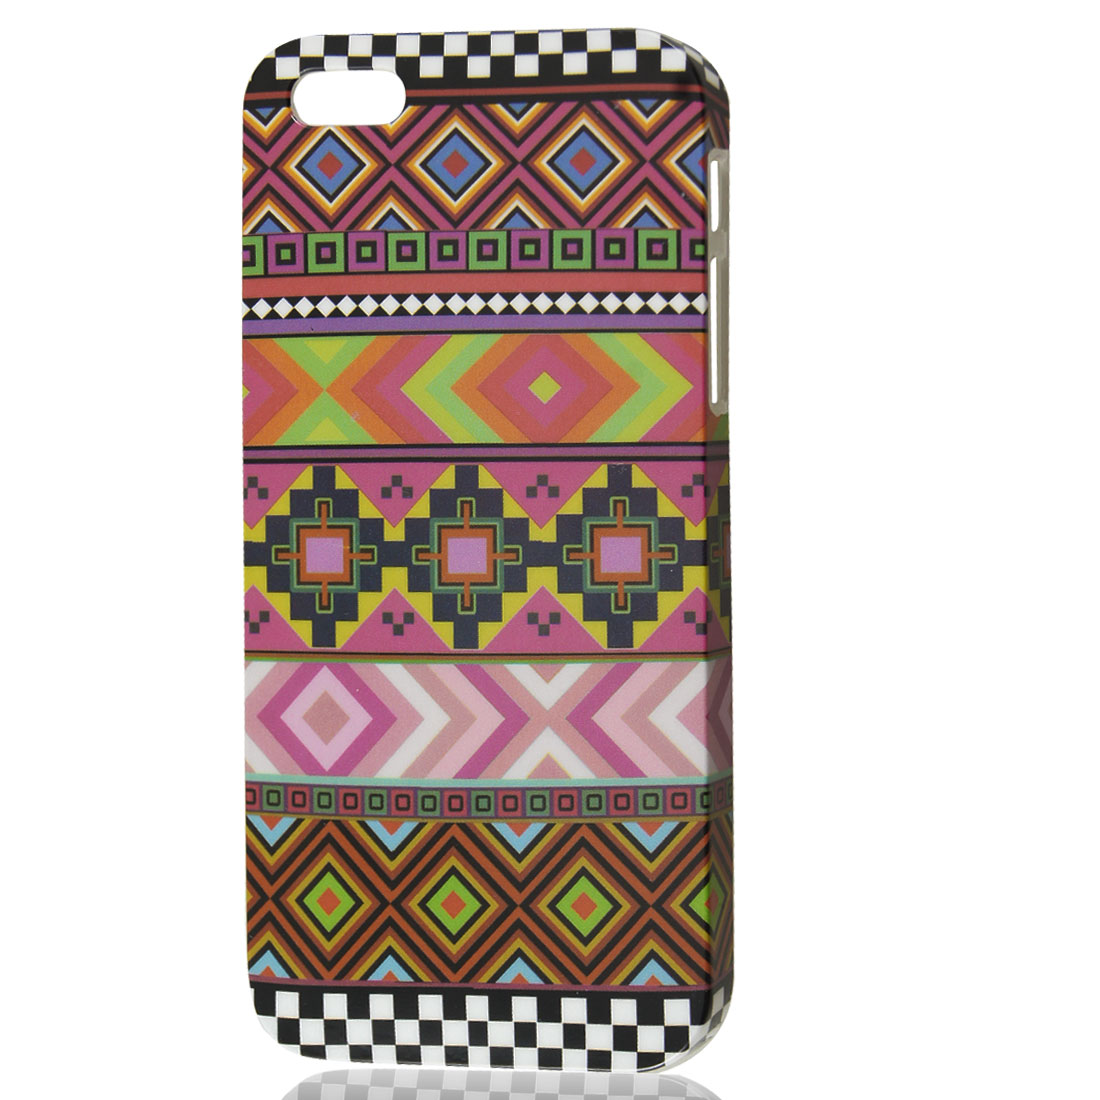 Assorted Color Rhombic Plaid IMD Hard Back Case Cover for iPhone 5 5G